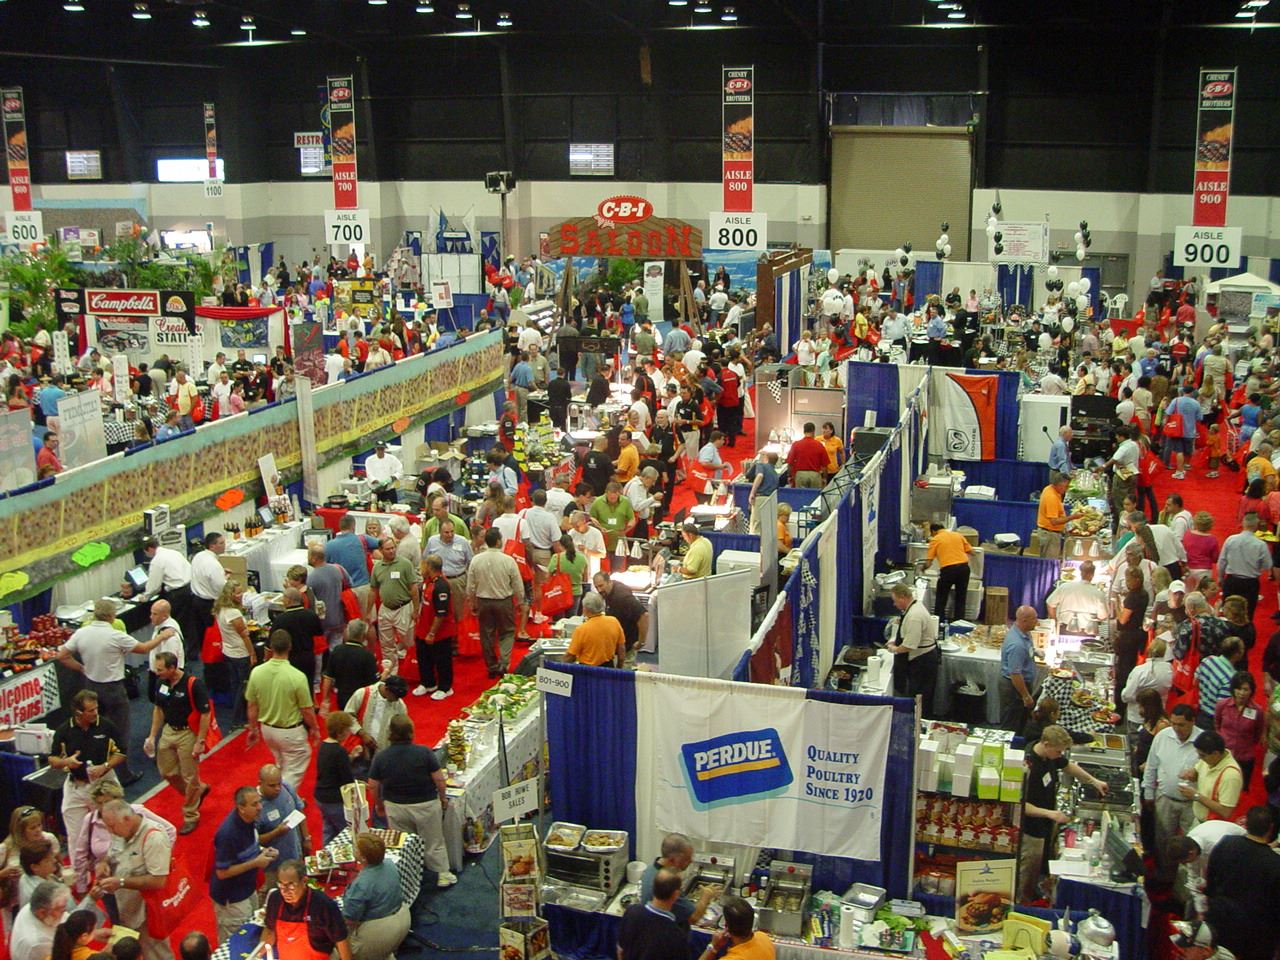 Rent The Facilities At The Expo Center At The South Florida Within South Florida Fairgrounds Events Calendar